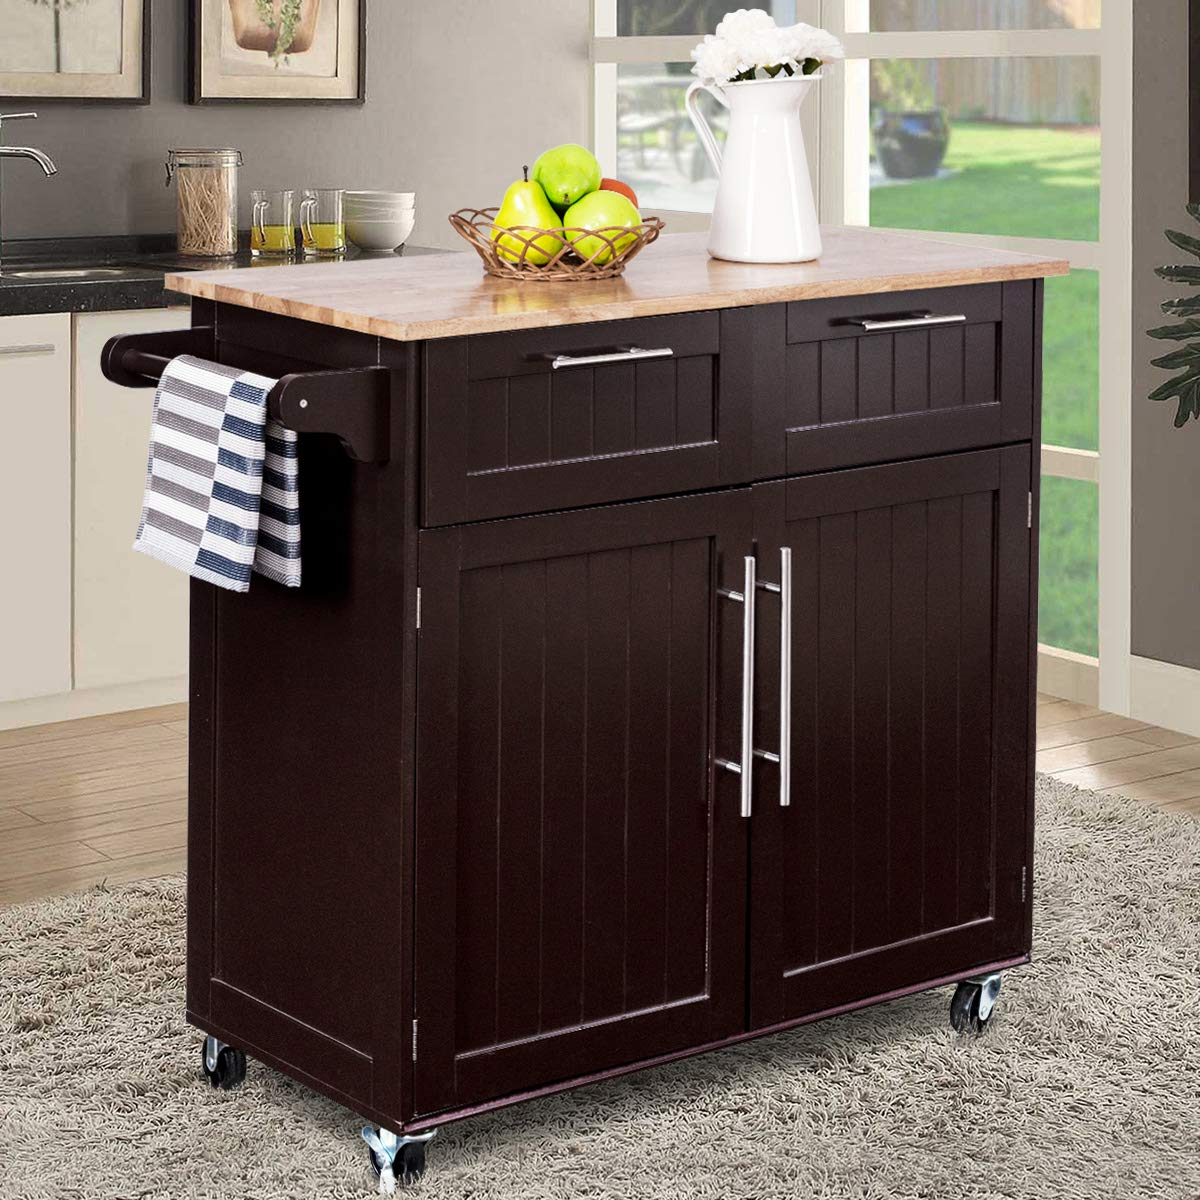 Giantex Kitchen Island Cart Rolling Storage Trolley Cart Home and Restaurant Serving Utility Cart with Drawers,Cabinet, Towel Rack and Wood Top by Giantex (Image #2)